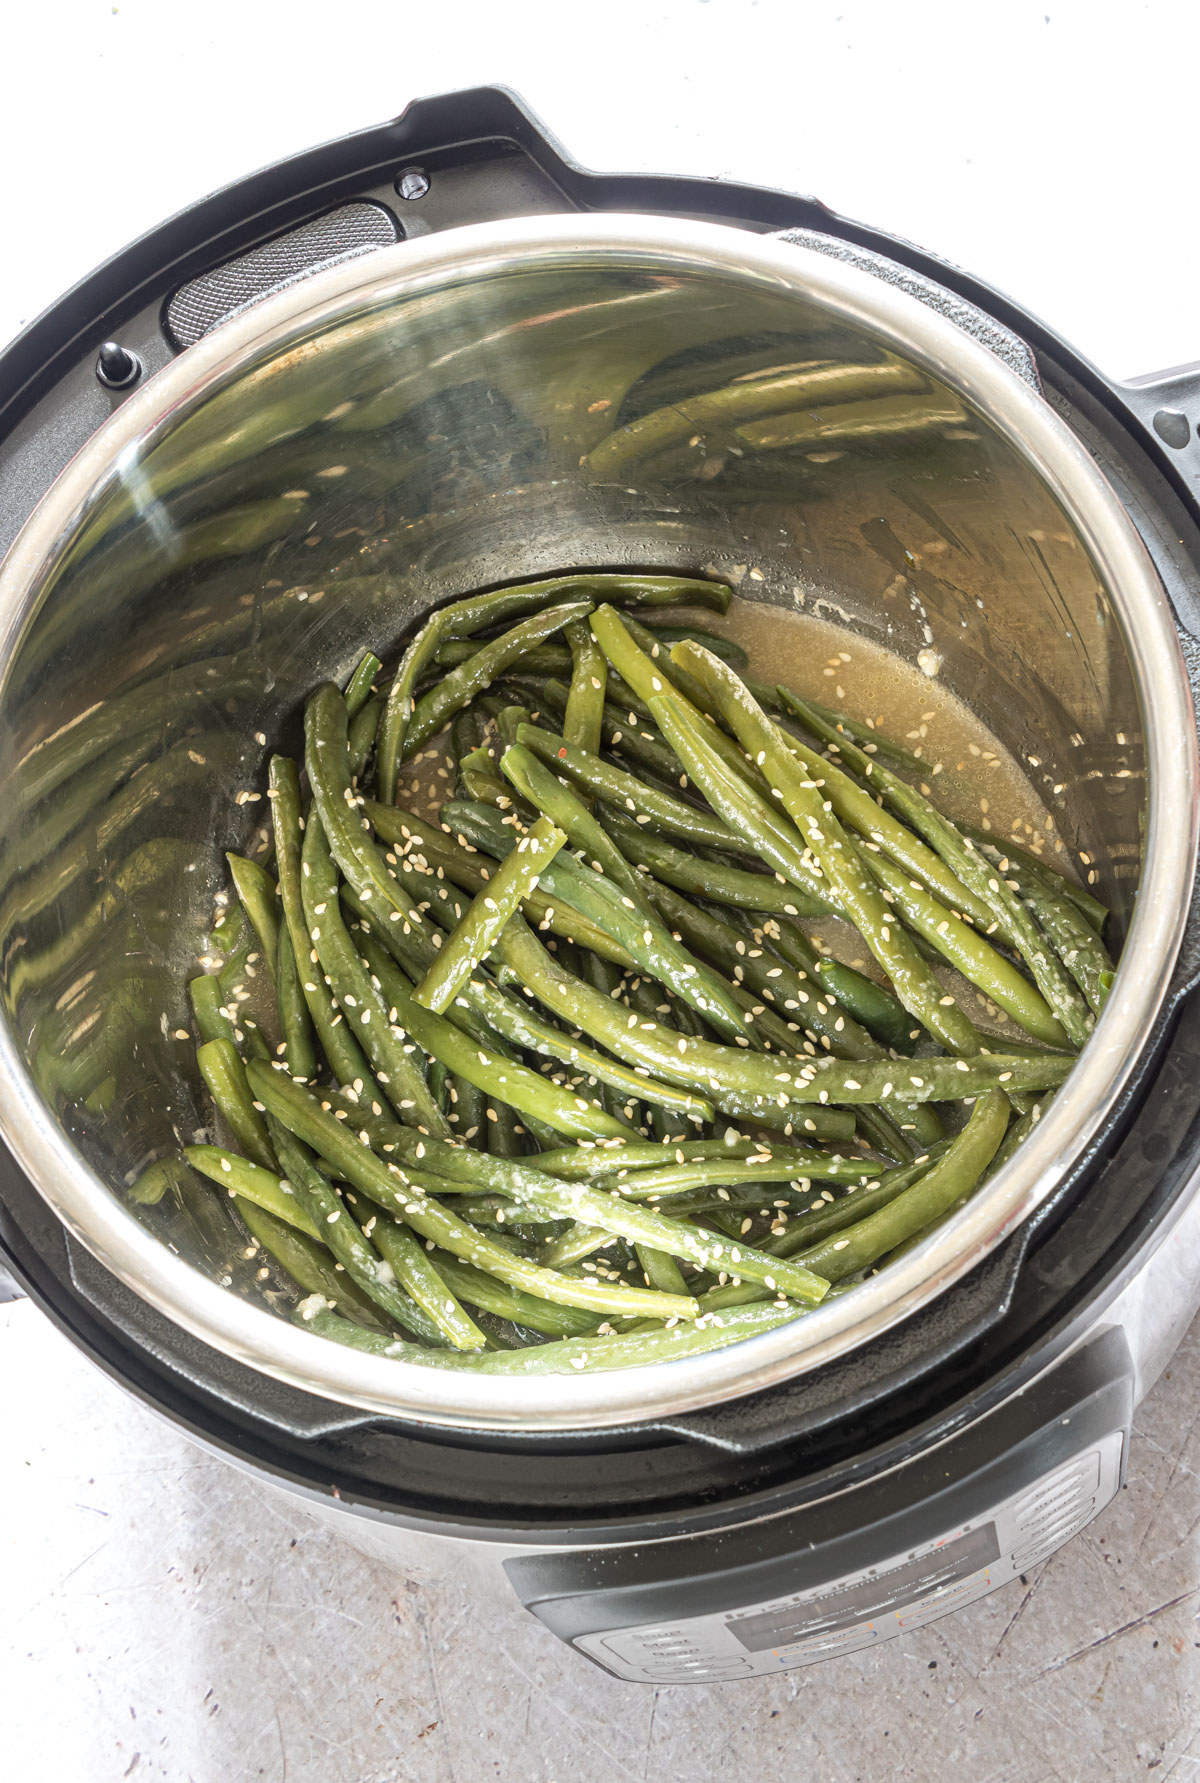 top down view of the cooked green beans inside the instant pot